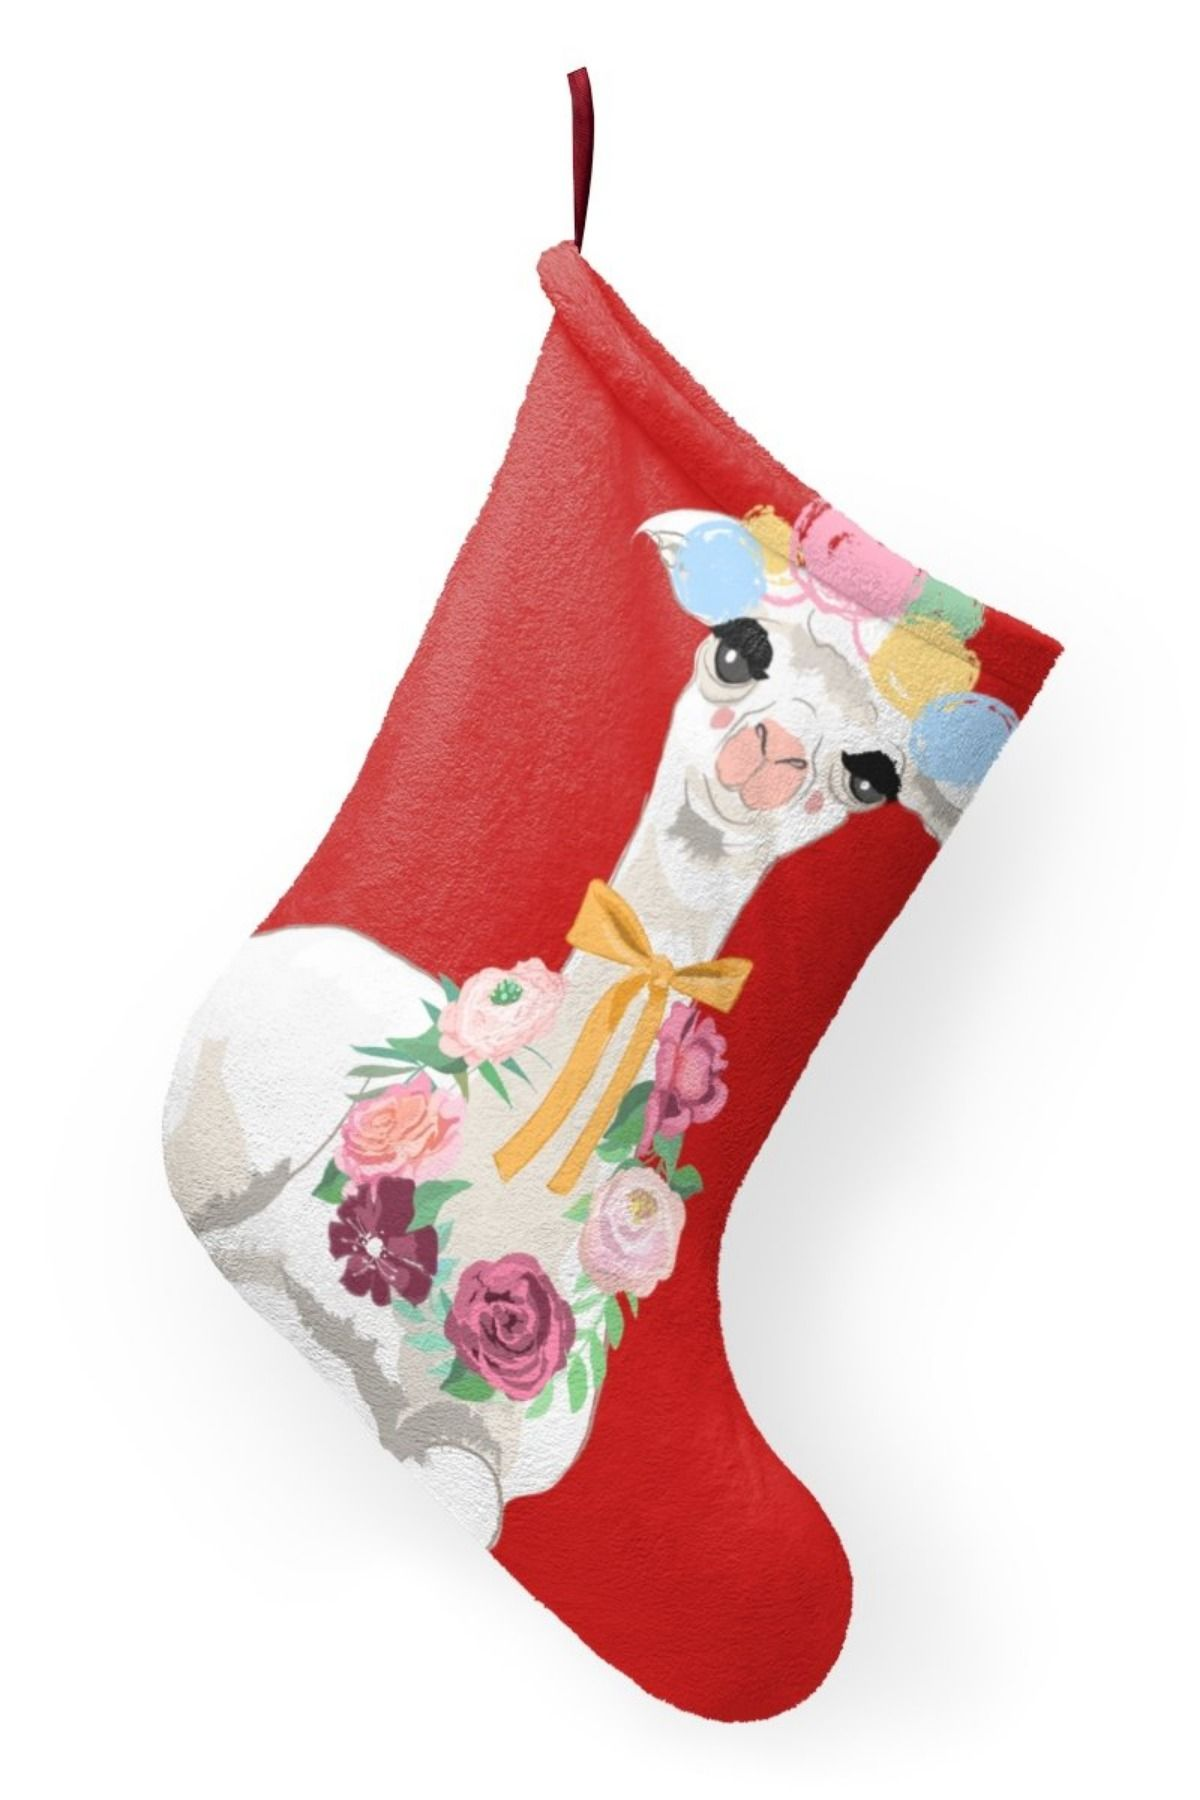 Llama Christmas Stocking.The Perfect Christmas Stocking For The Llama Lover Oh How